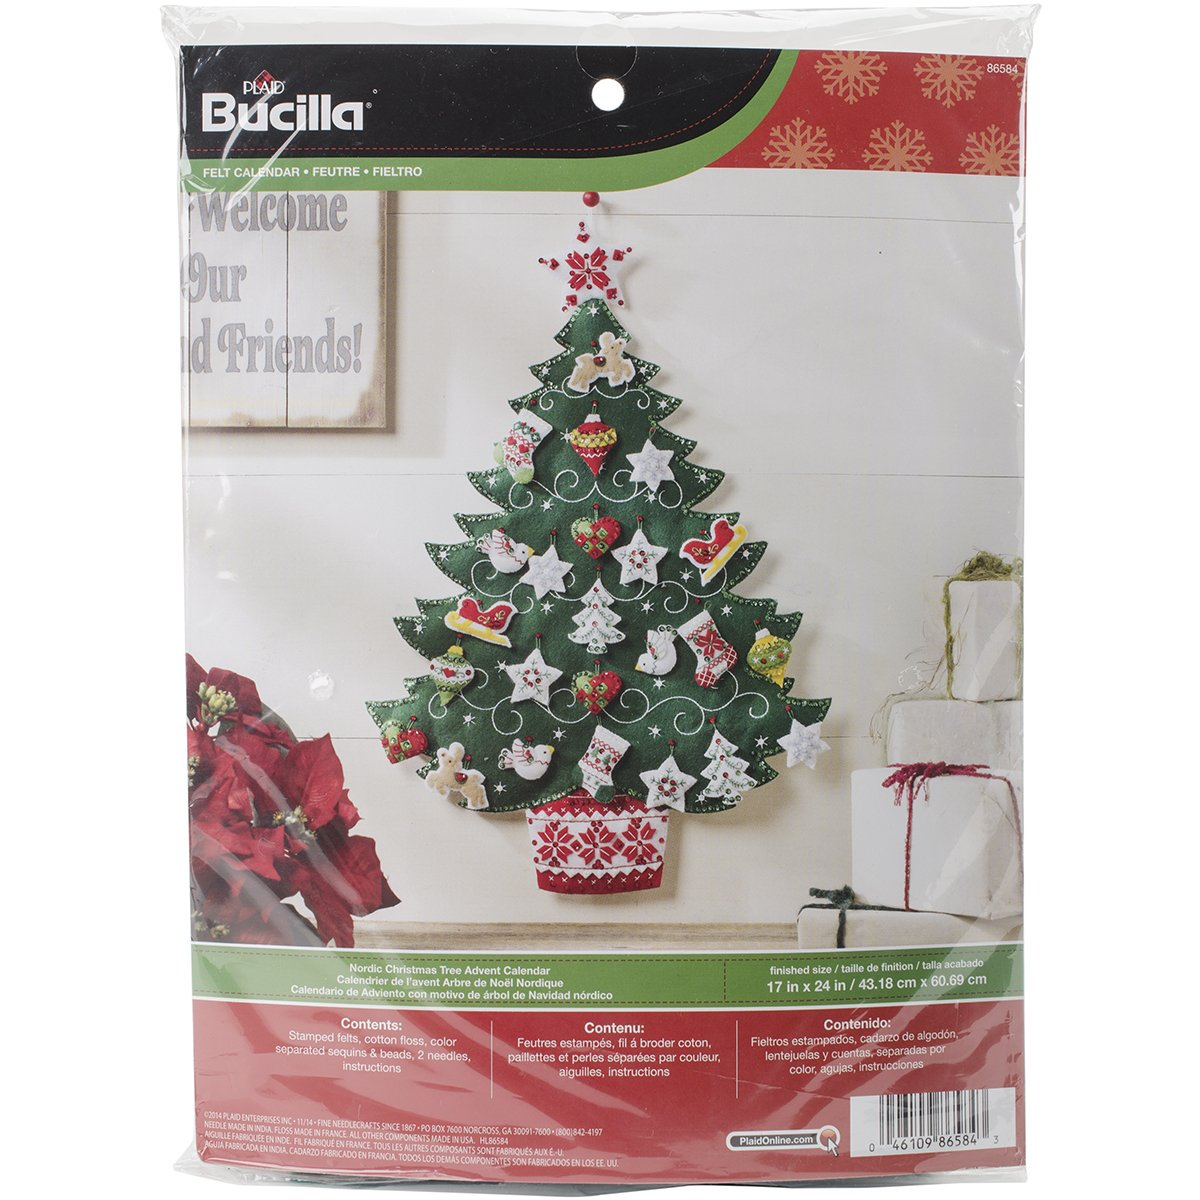 Felt Christmas tree sewing kit craft by Bucilla